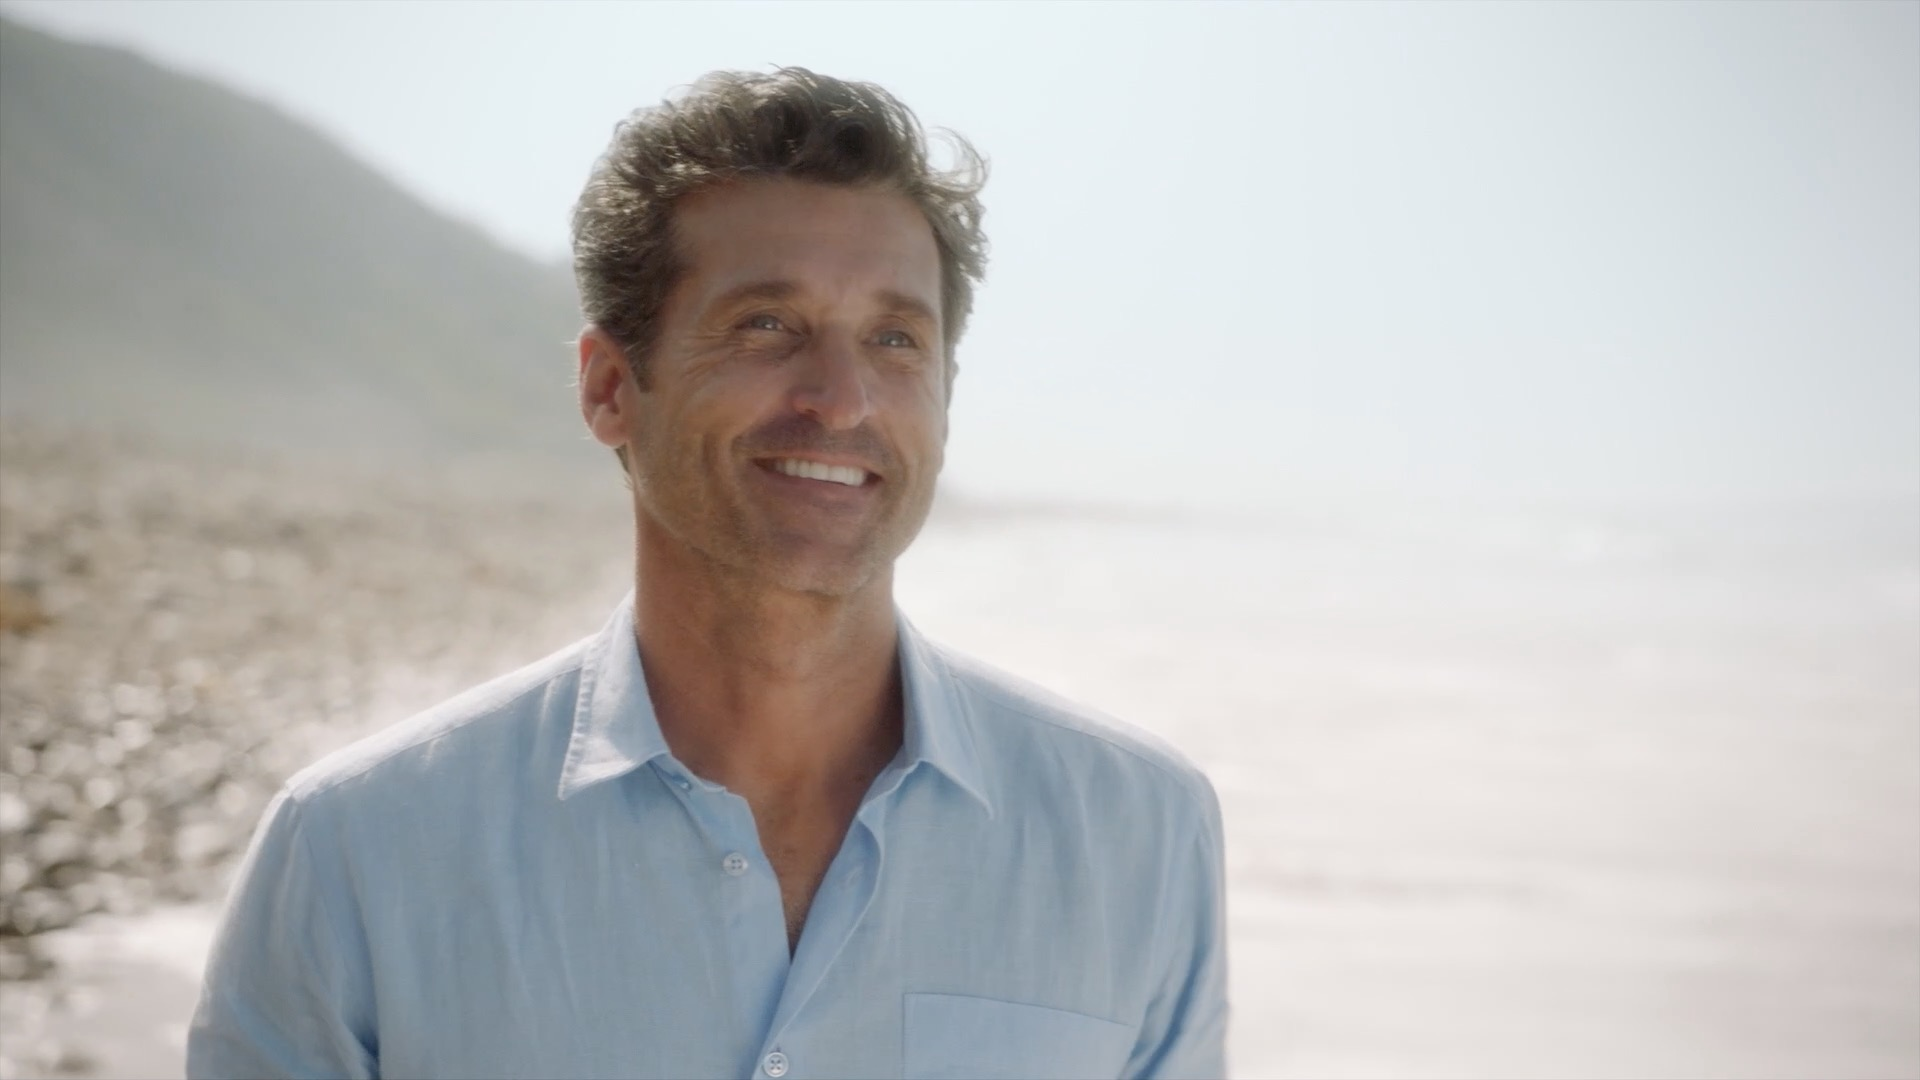 Patrick Dempsey Talks Final Appearance on 'Grey's Anatomy' and Singing for the First Time in the 'Enchanted' Sequel (EXCLUSIVE) thumbnail